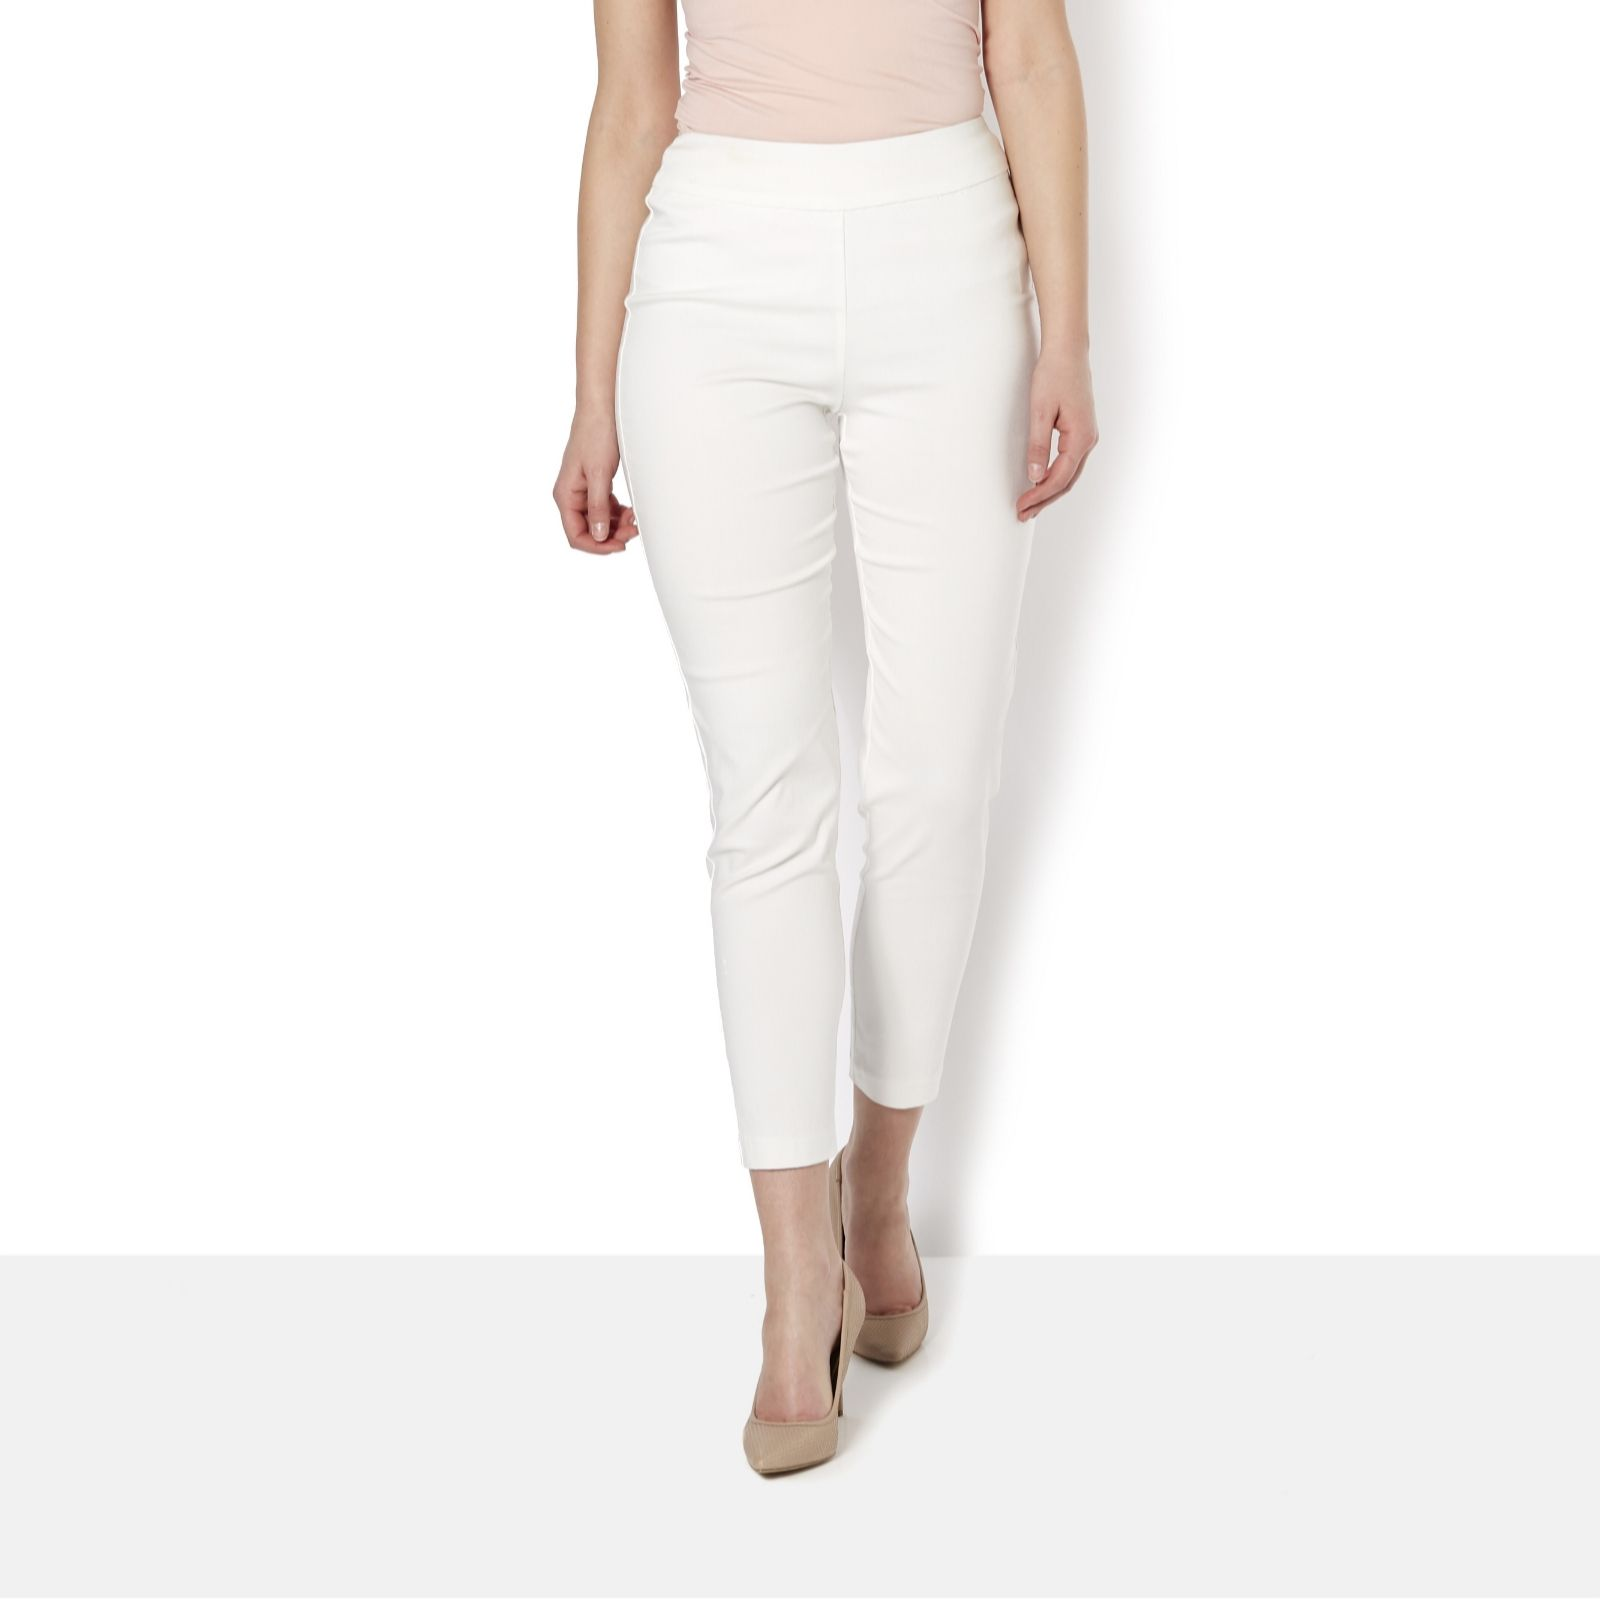 MarlaWynne Flatter Fit with Mesh Panel Trouser - 118754